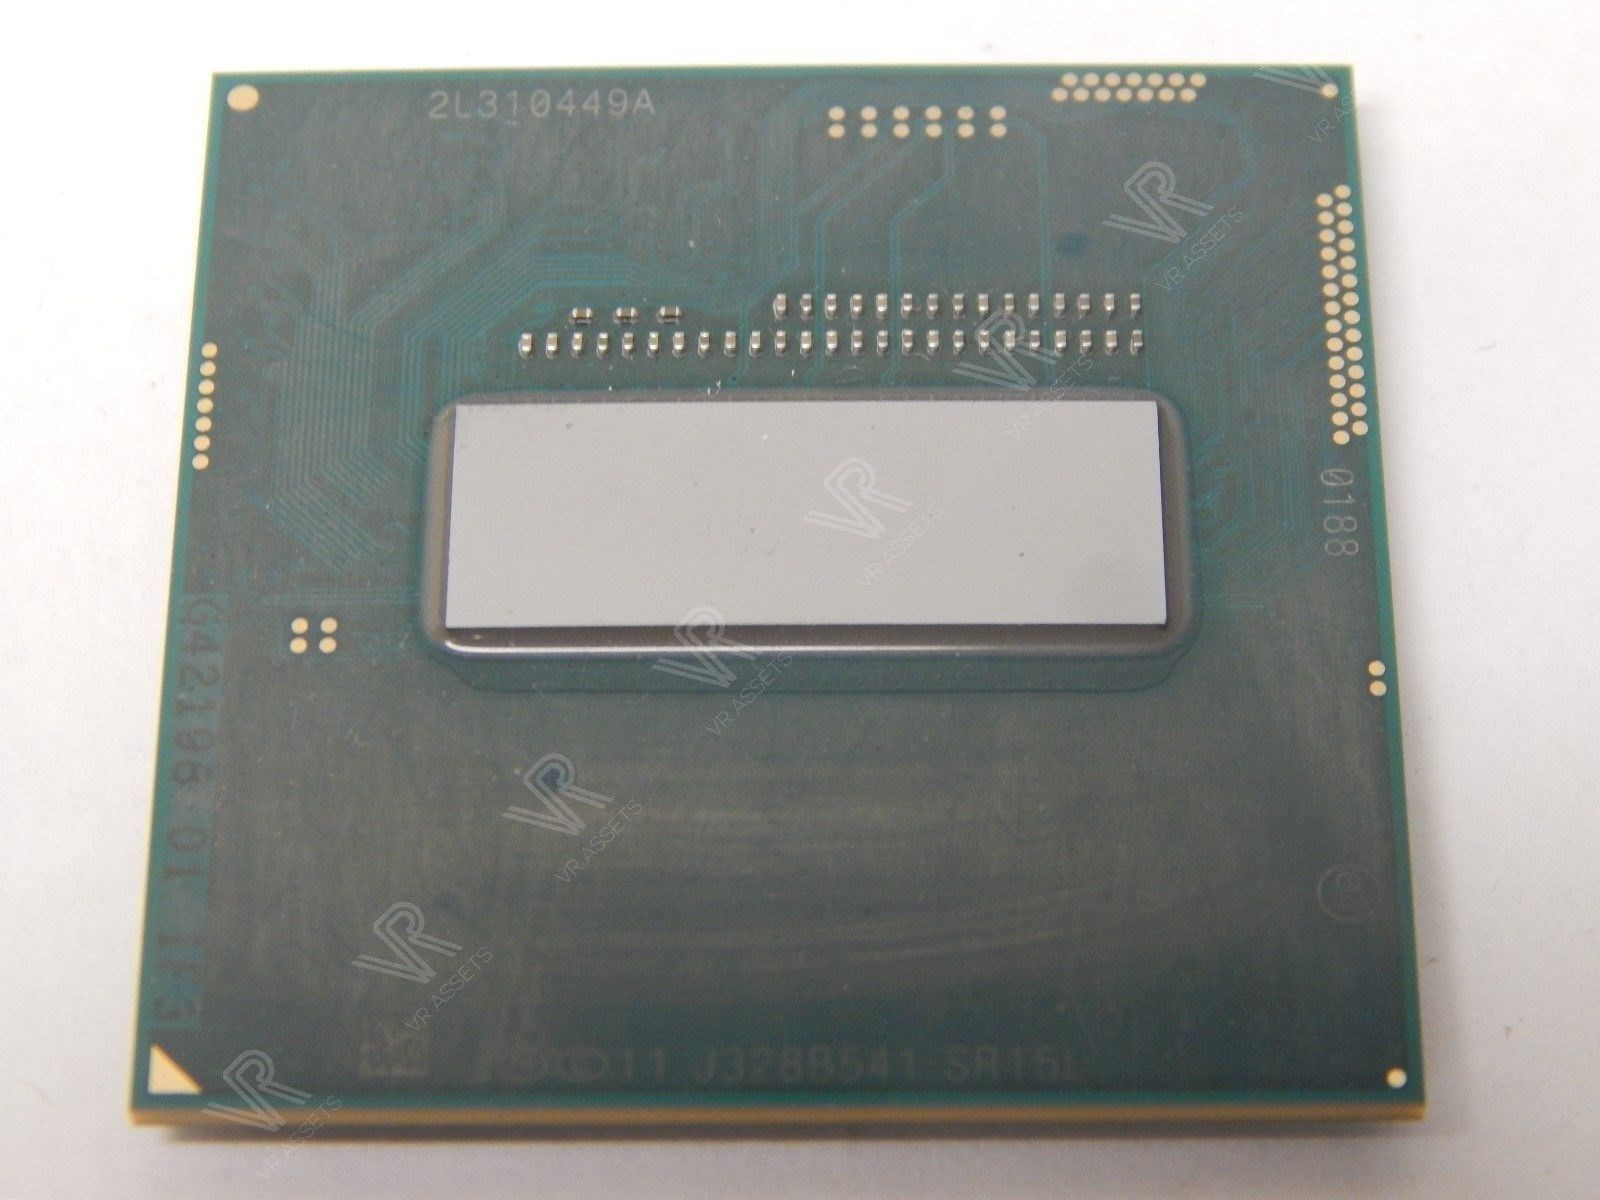 Intel Quad Core i7-4800MQ 2.7GHz (3.7GHz Turbo) 8Mb Cache Laptop CPU SR15L